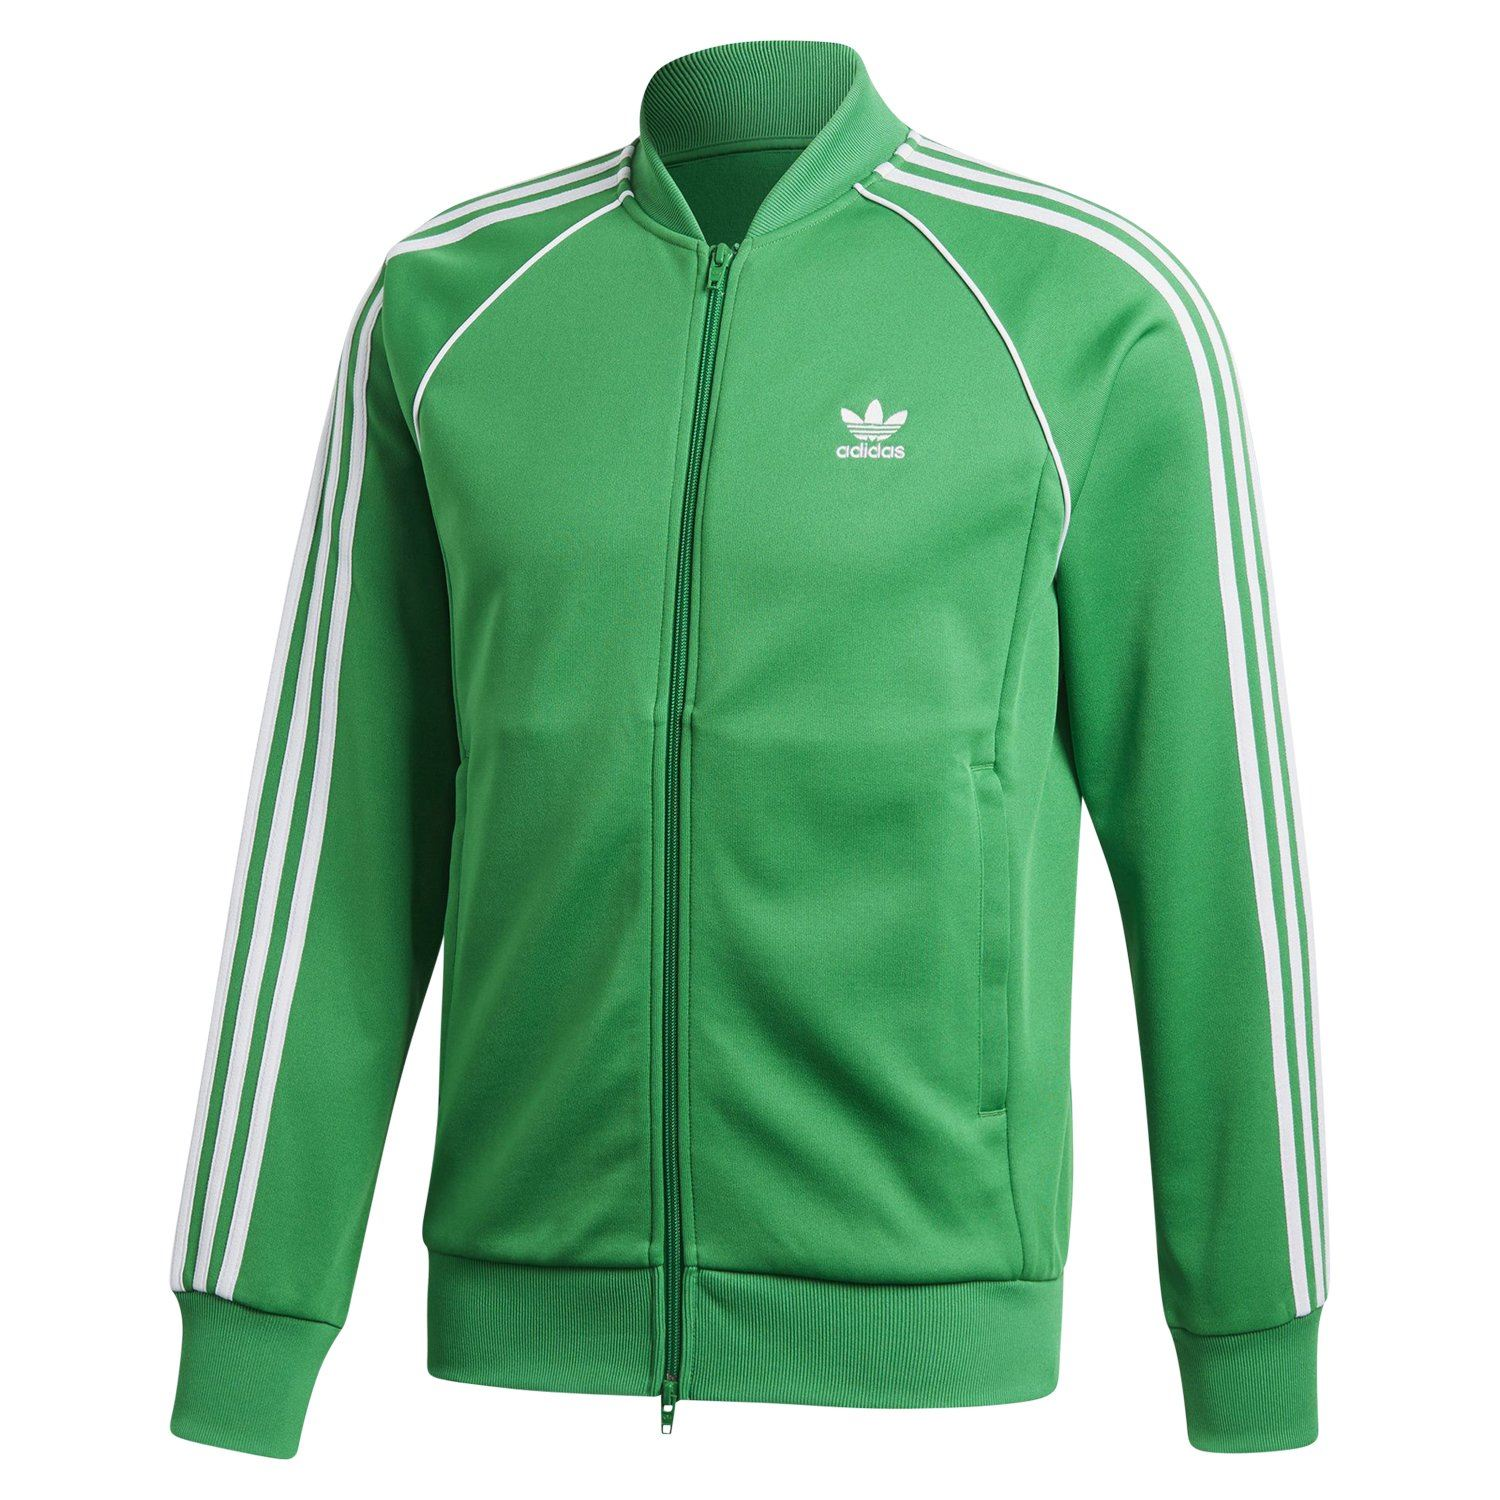 Details zu Adidas Original Superstar Trainingsjacke Grün Retro Adicolor 3 Streifen Sst